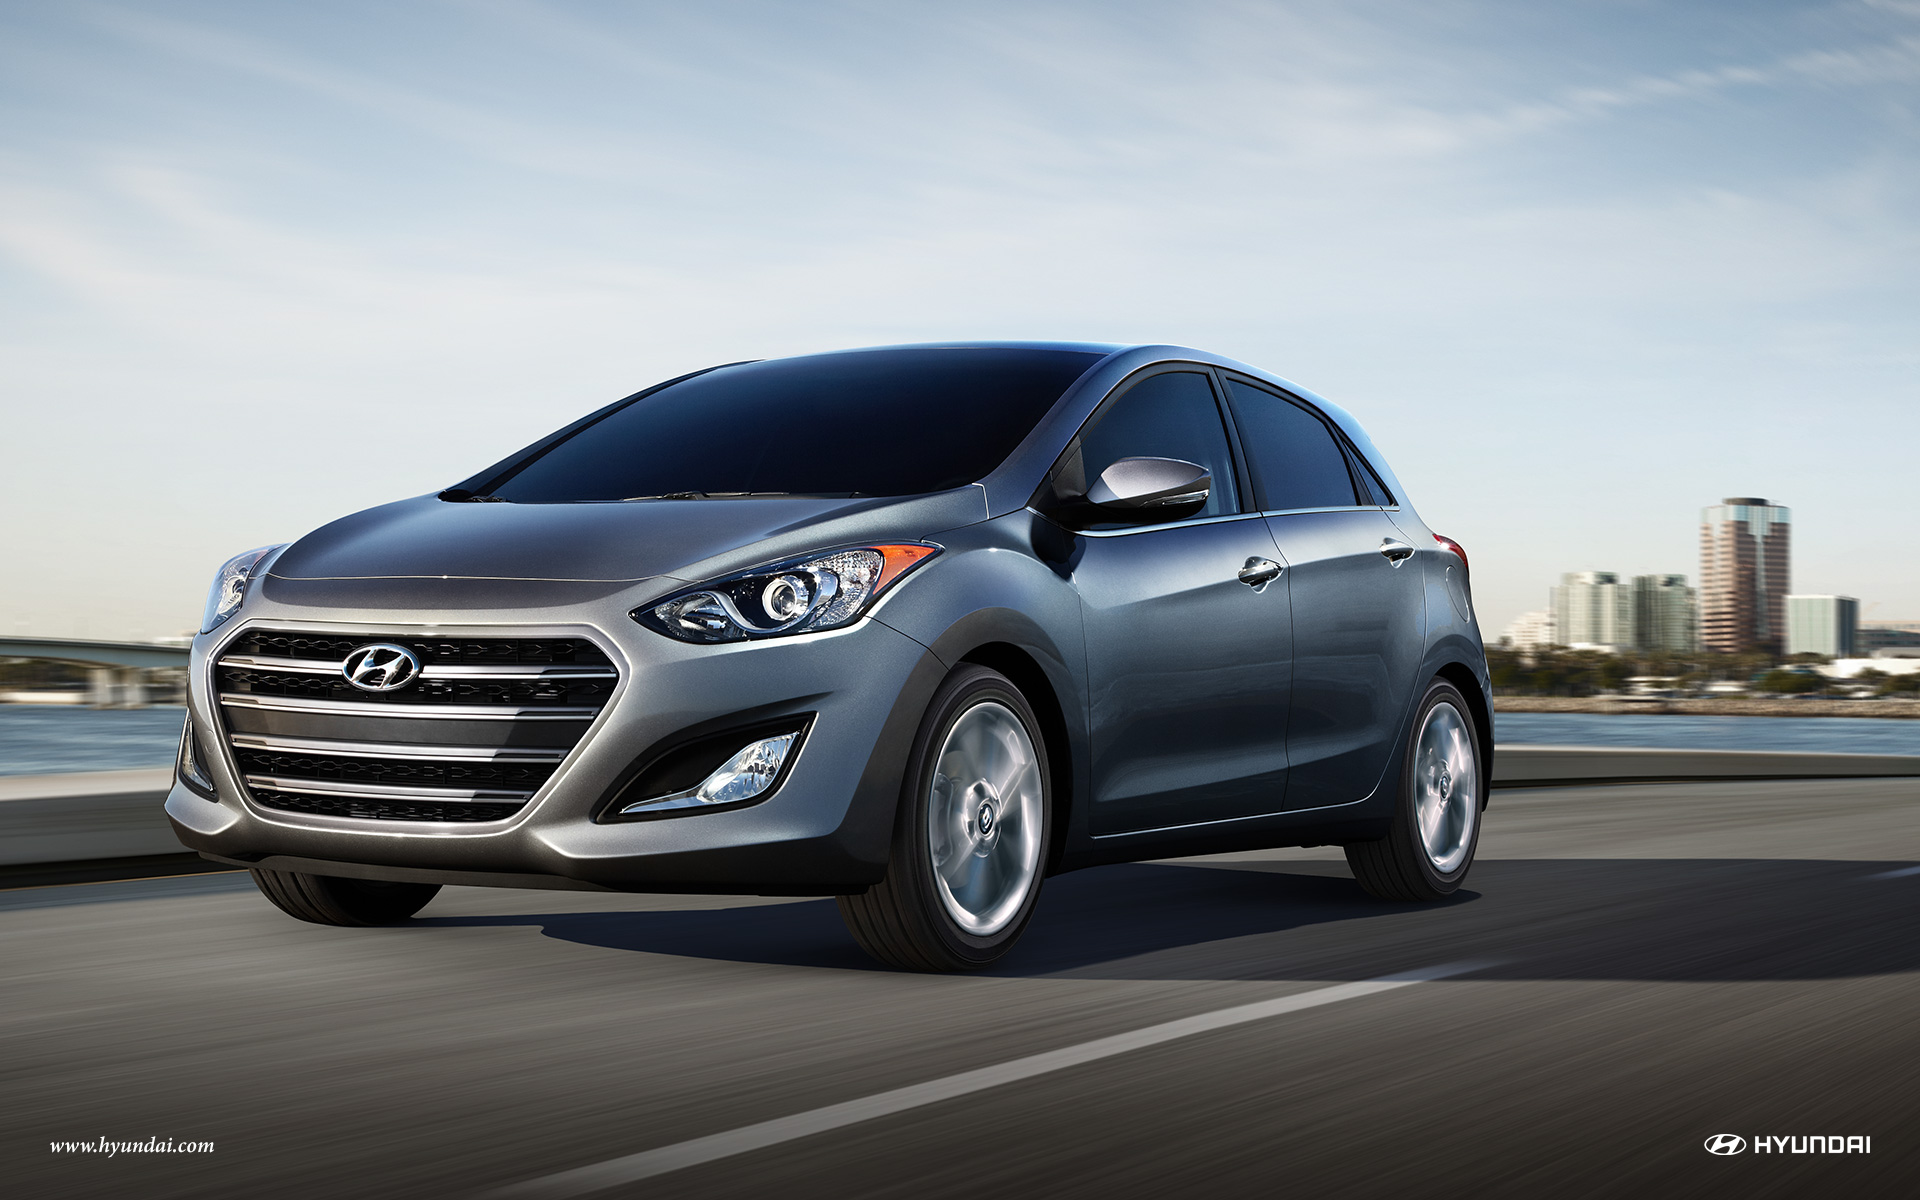 2018 Hyundai Elantra GT Leasing near Laurel, MD